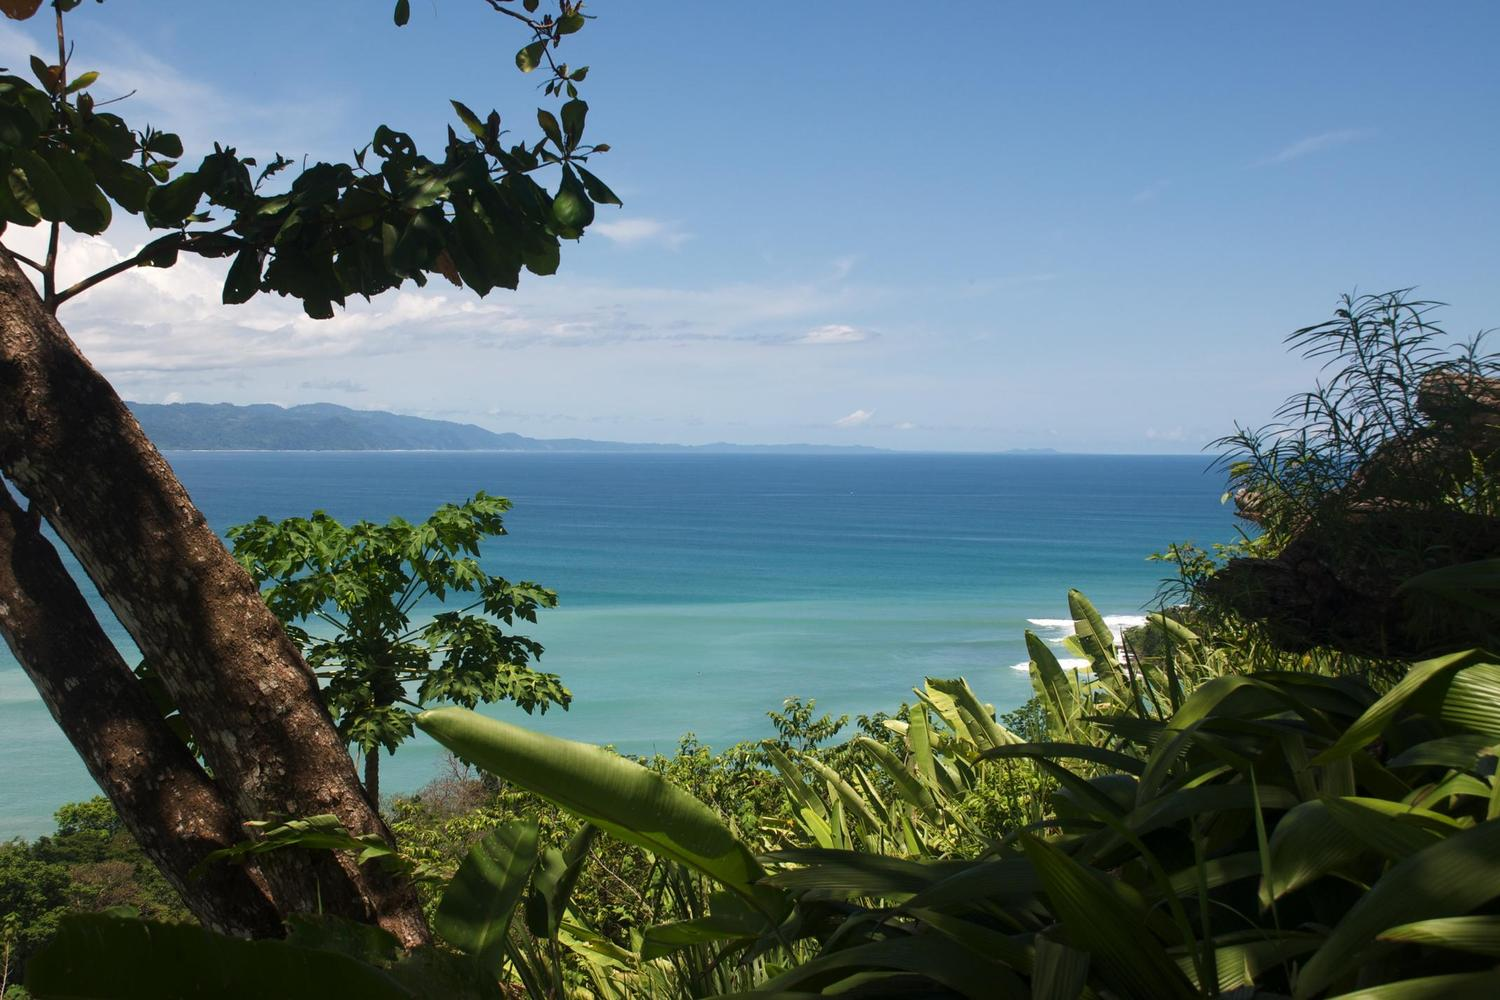 Lovely view out over the waters of the Golfo Dulce